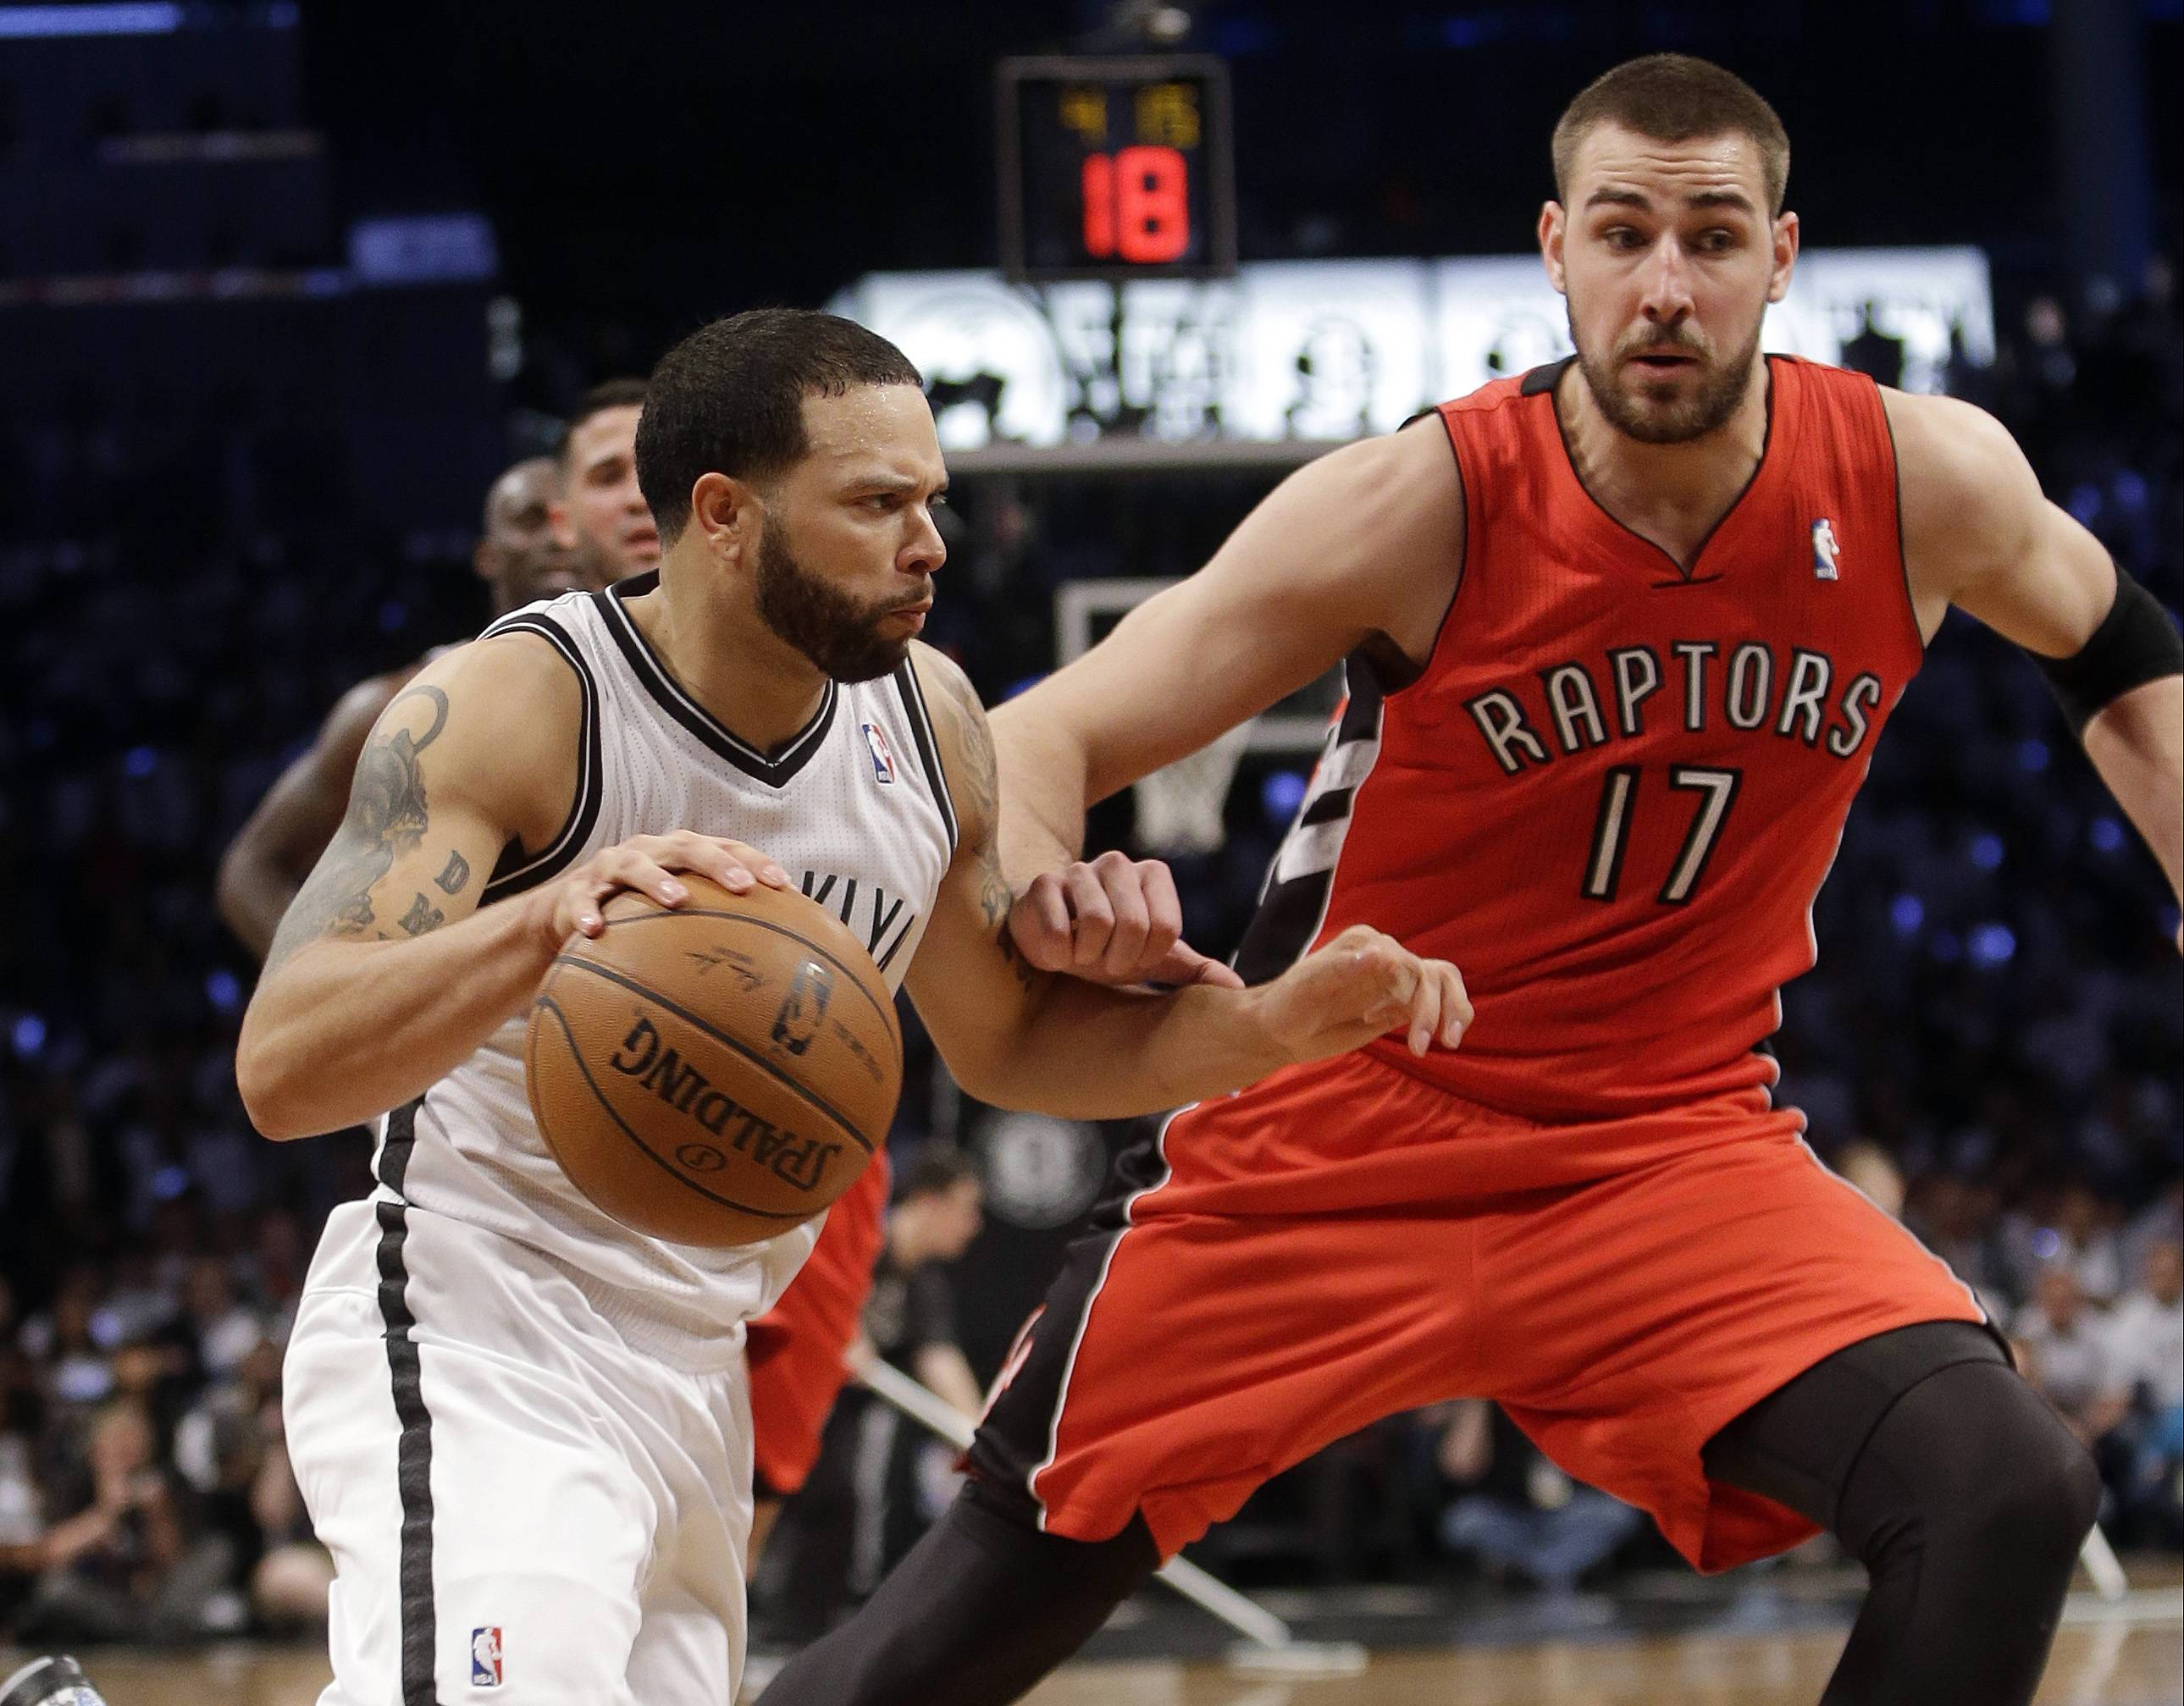 Brooklyn Nets' Deron Williams drives past Toronto Raptors' Jonas Valanciunas, right, during the second half of Game 6 of the opening-round NBA basketball playoff series Friday, May 2, 2014, in New York. The Nets won the game 97-83. (AP Photo/Frank Franklin II)